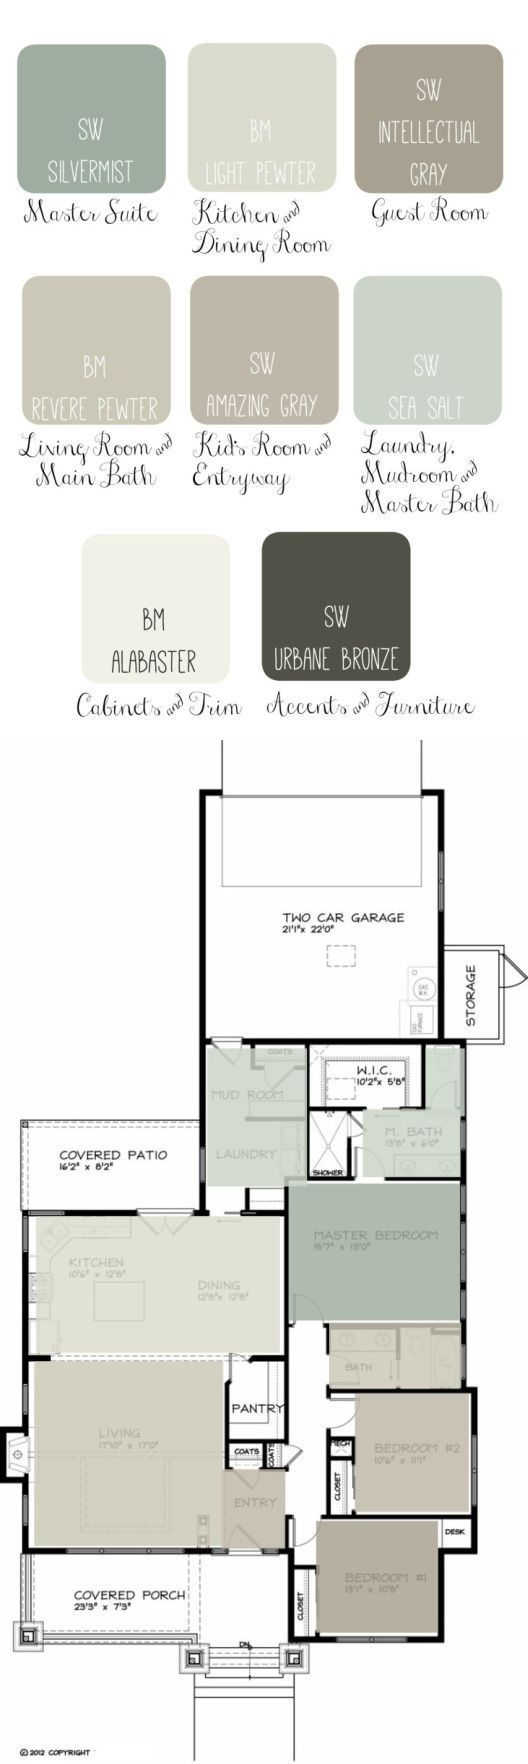 25 best ideas about create floor plan on pinterest im software blue open plan bathrooms and - Floor plans for free paint ...